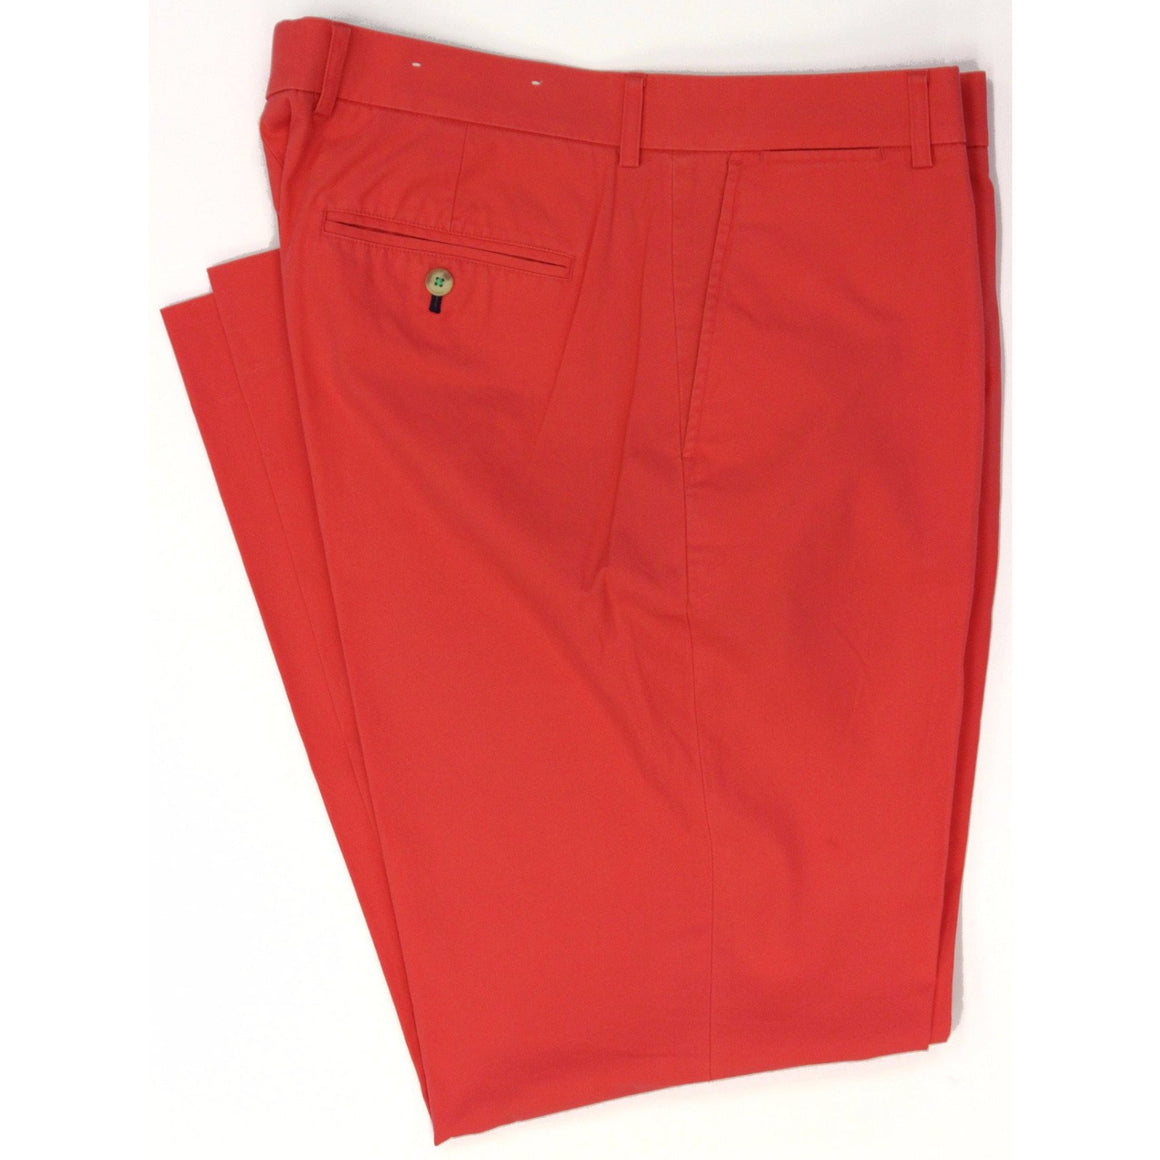 "Lilly Pulitzer Coral Beach Club Red Poplin Trousers Sz: 36""W"